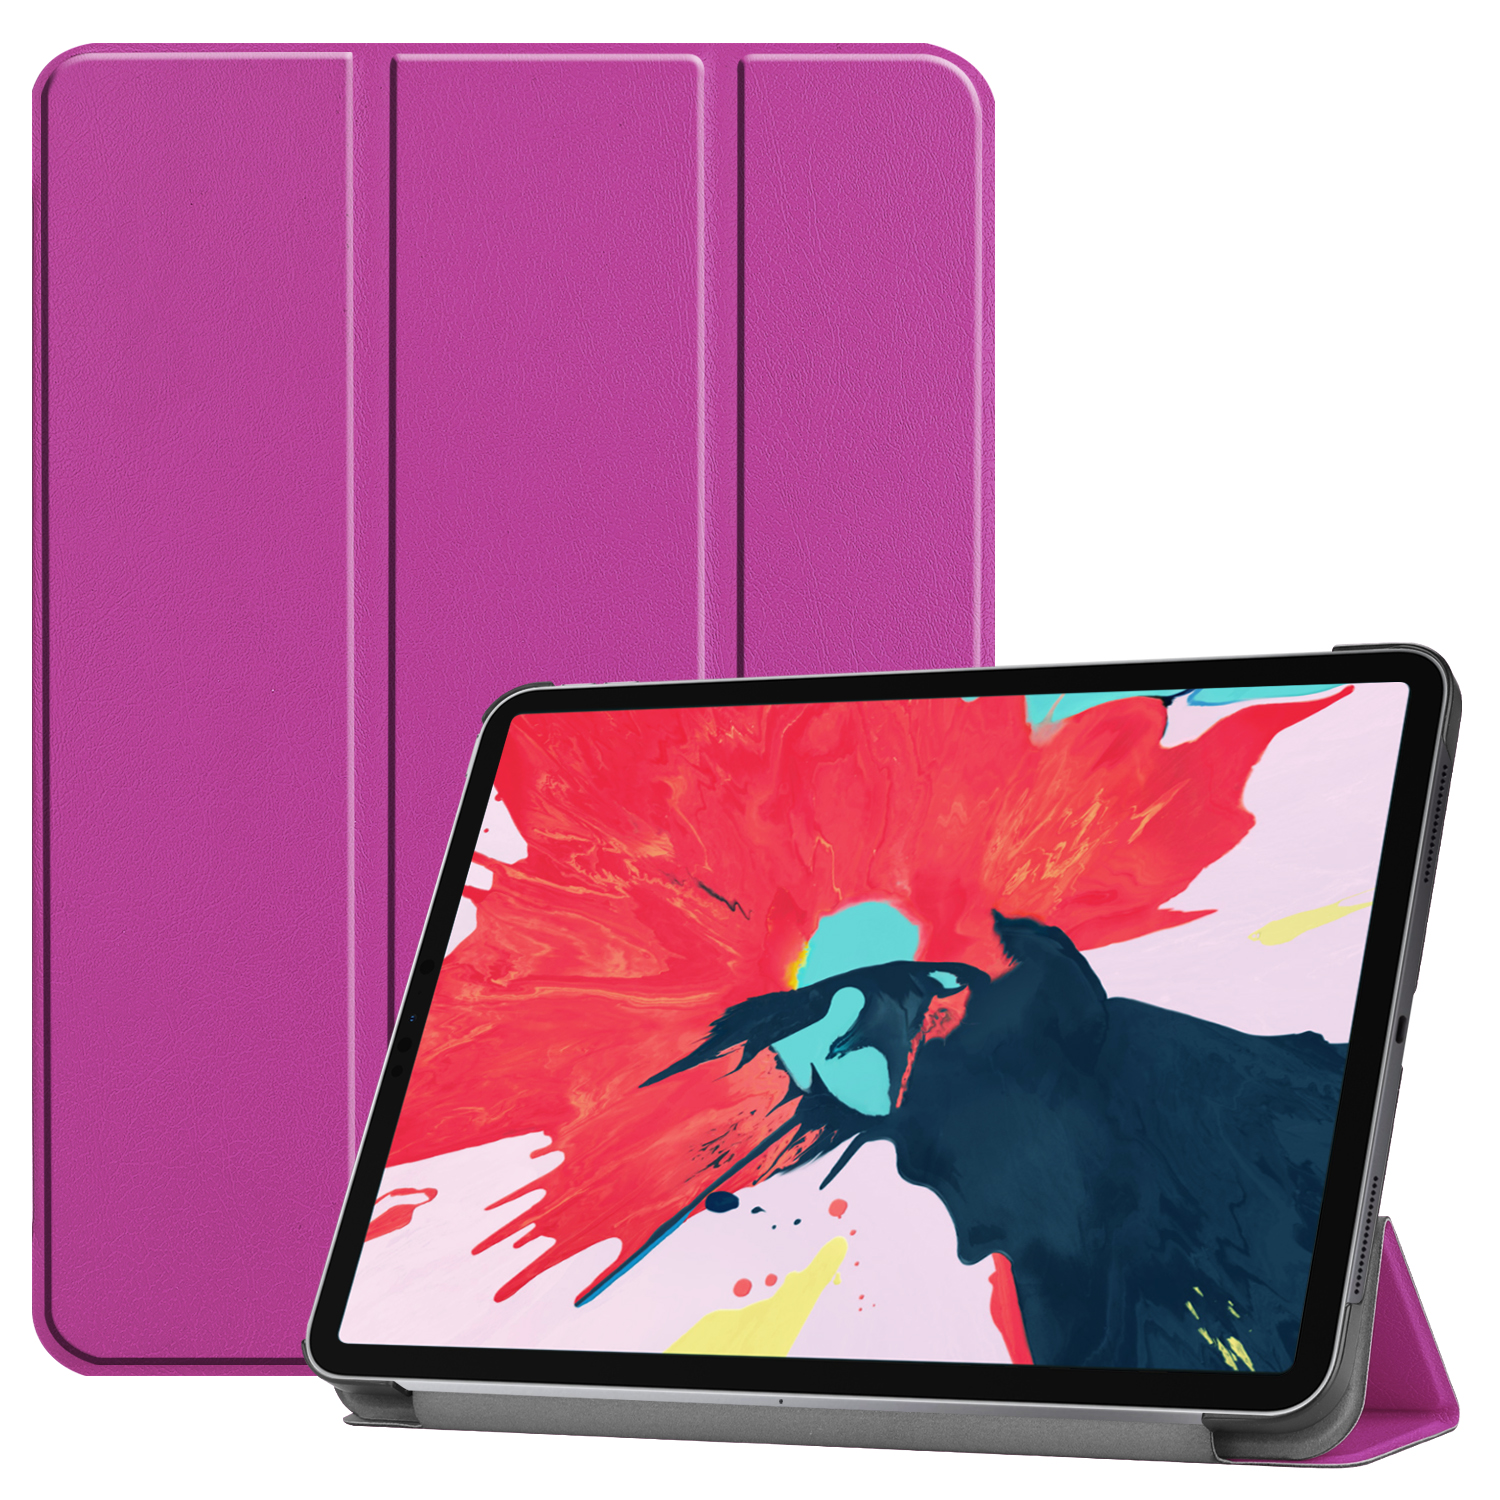 Tablet PC Protective Case Ultra-thin Smart Cover for iPad pro 11(2020) purple